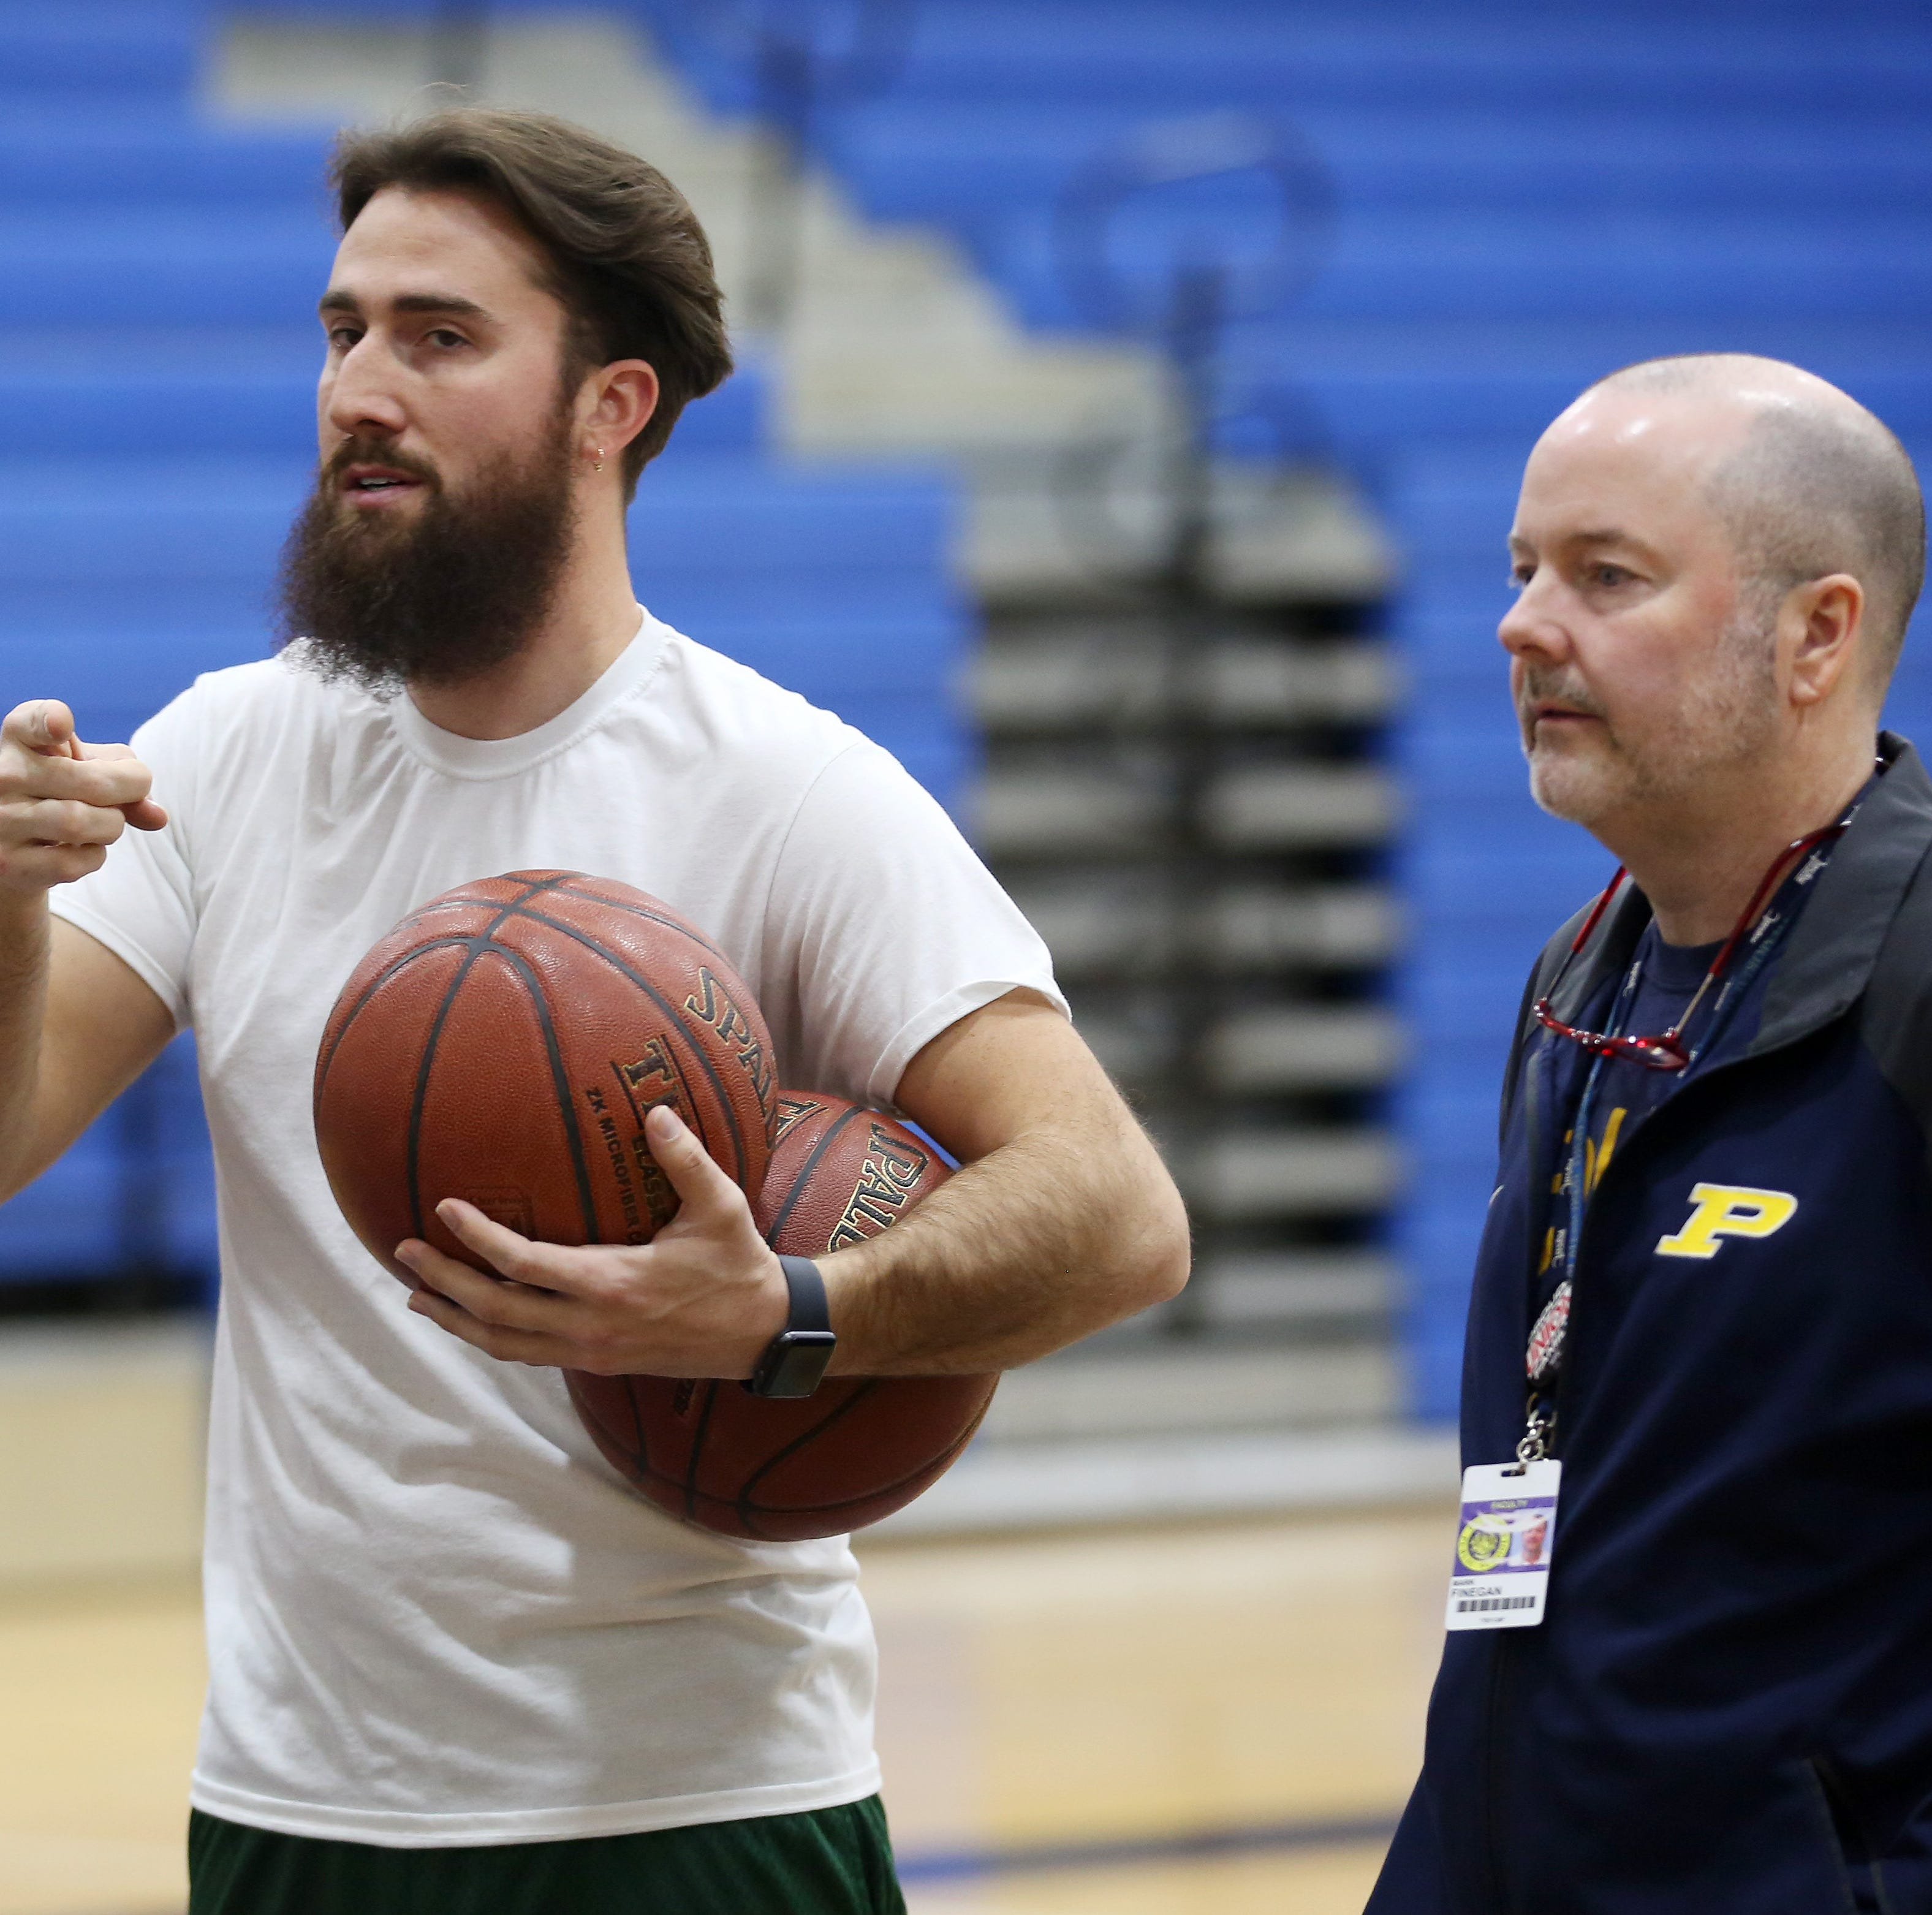 Boys basketball: Longtime Pelham coach switches roles with former star, assistant